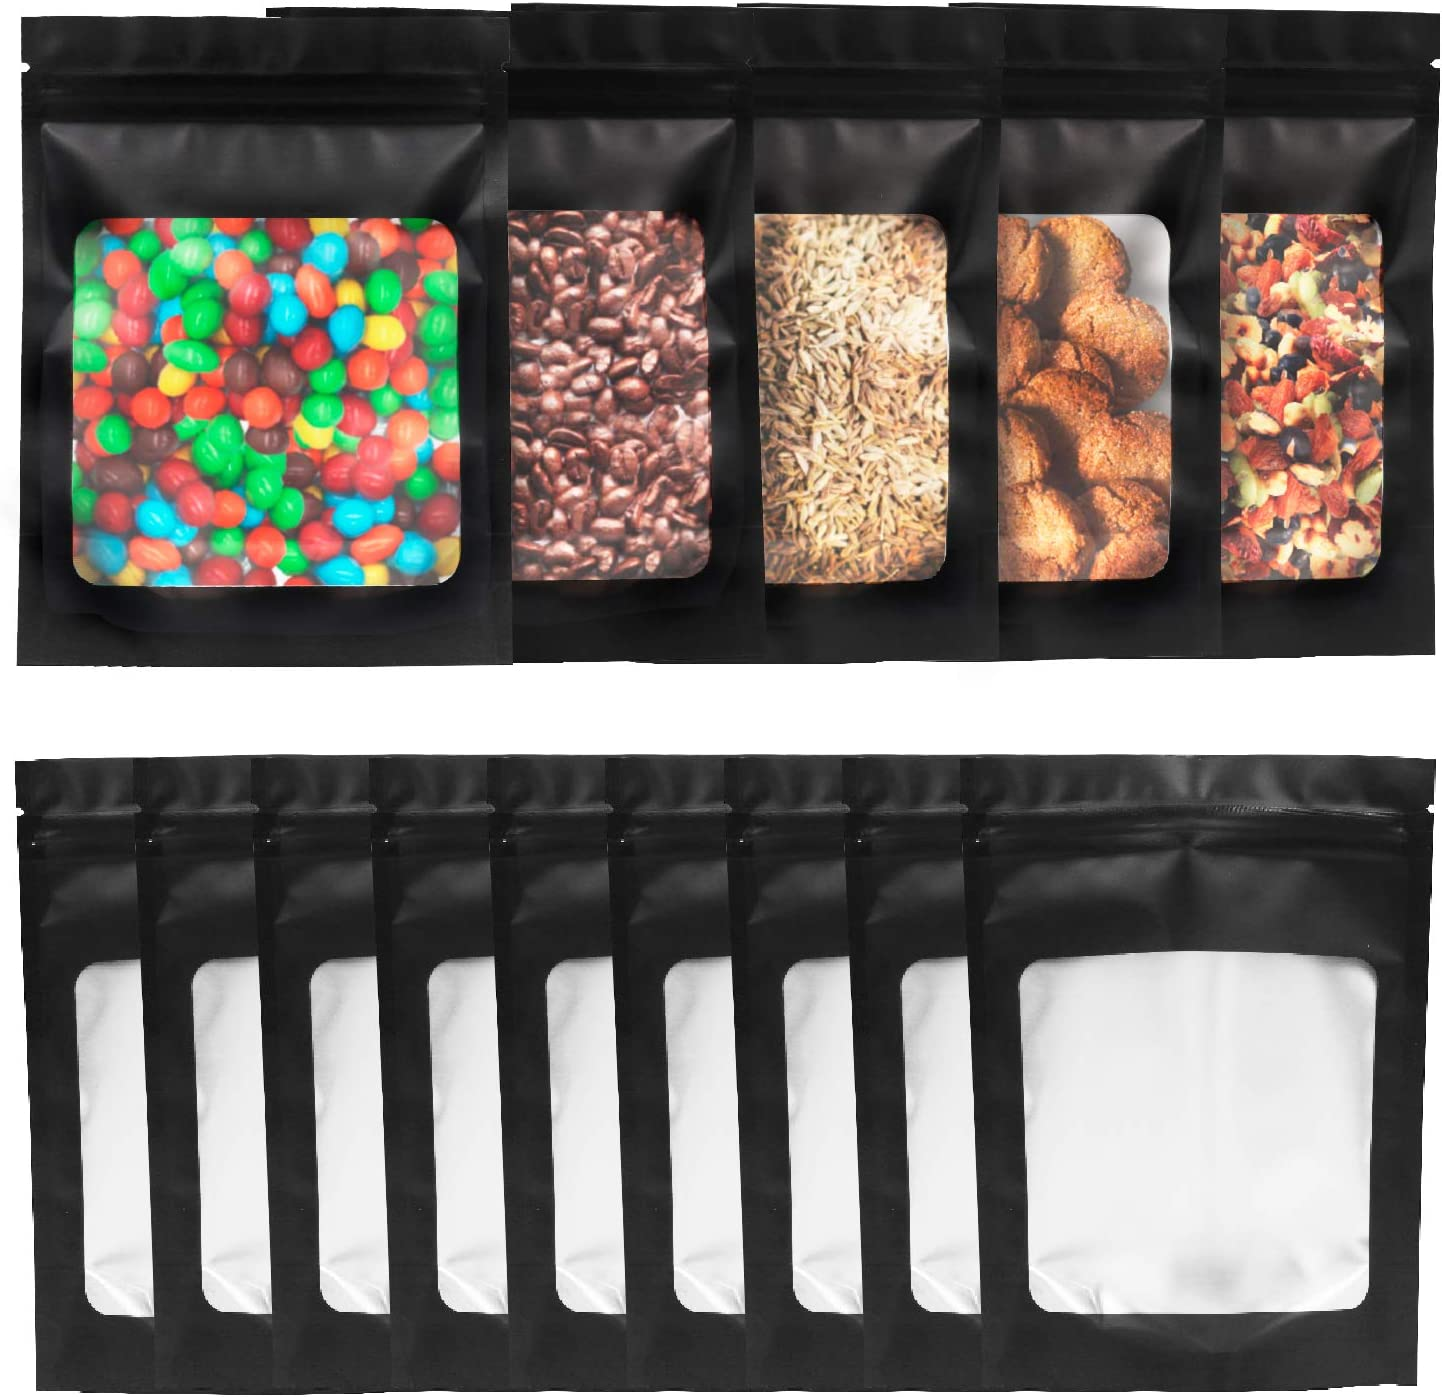 100 Pieces Resealable Black Mylar Bags 4.7 x 6 Inch Smell Proof Bags with Clear Window for Food Self Sealing Storage Supplies